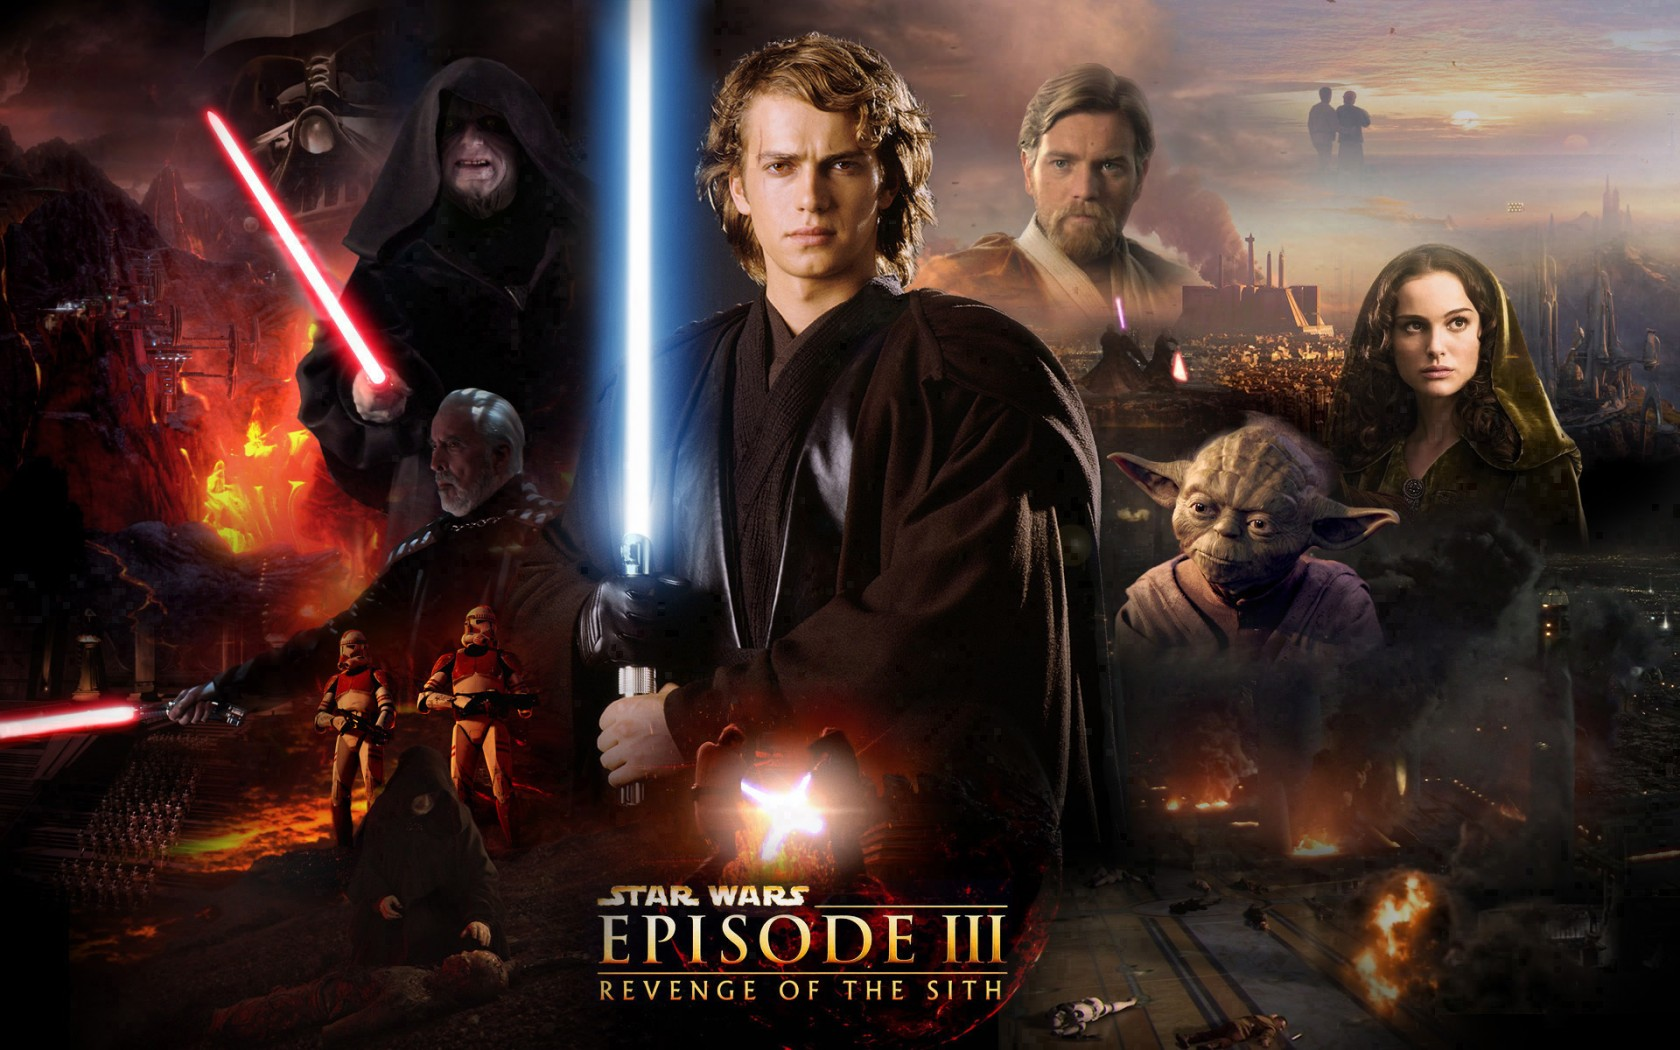 Star Wars Wallpaper episode 3 revenge of the sith Anakin Skywalker 1680x1050